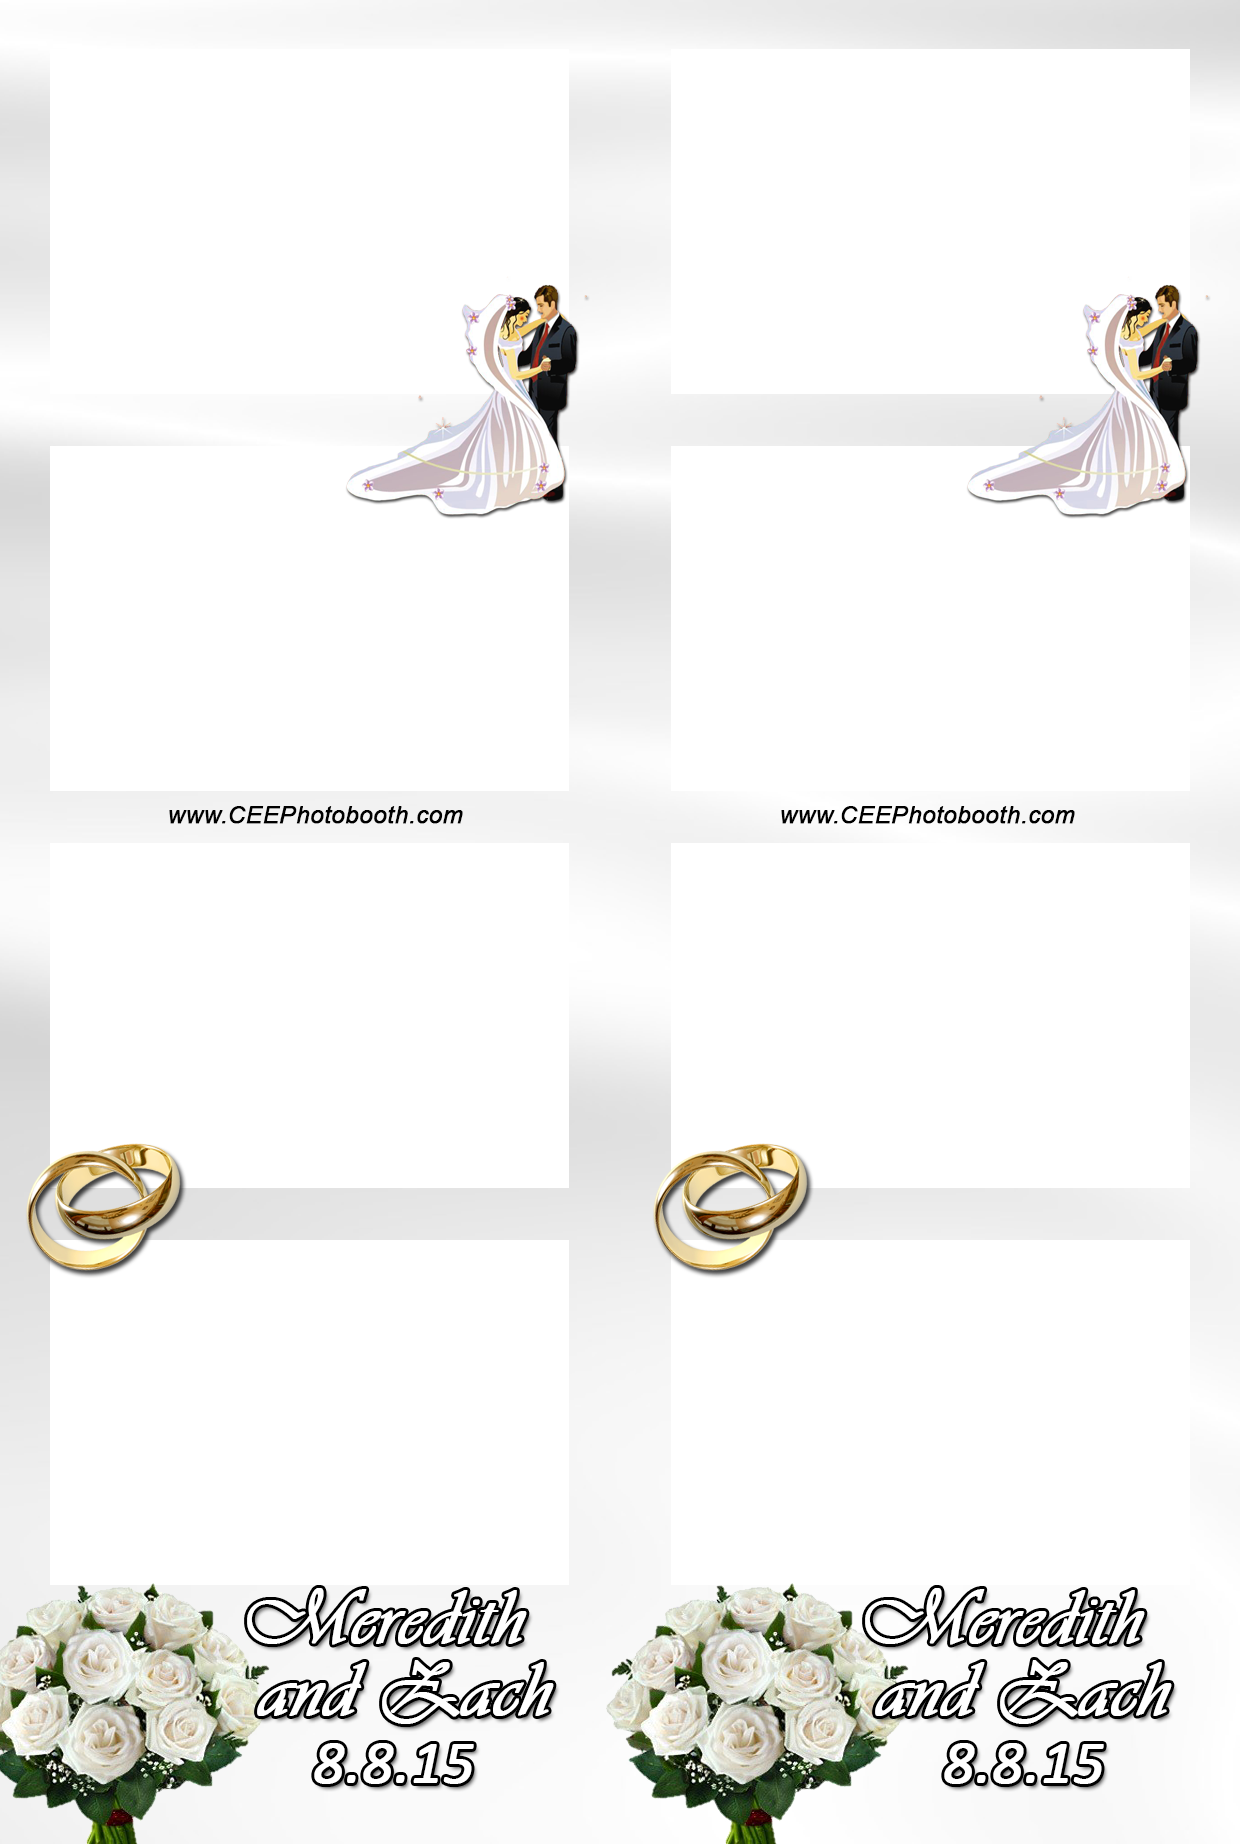 wedding photo booth layout 12